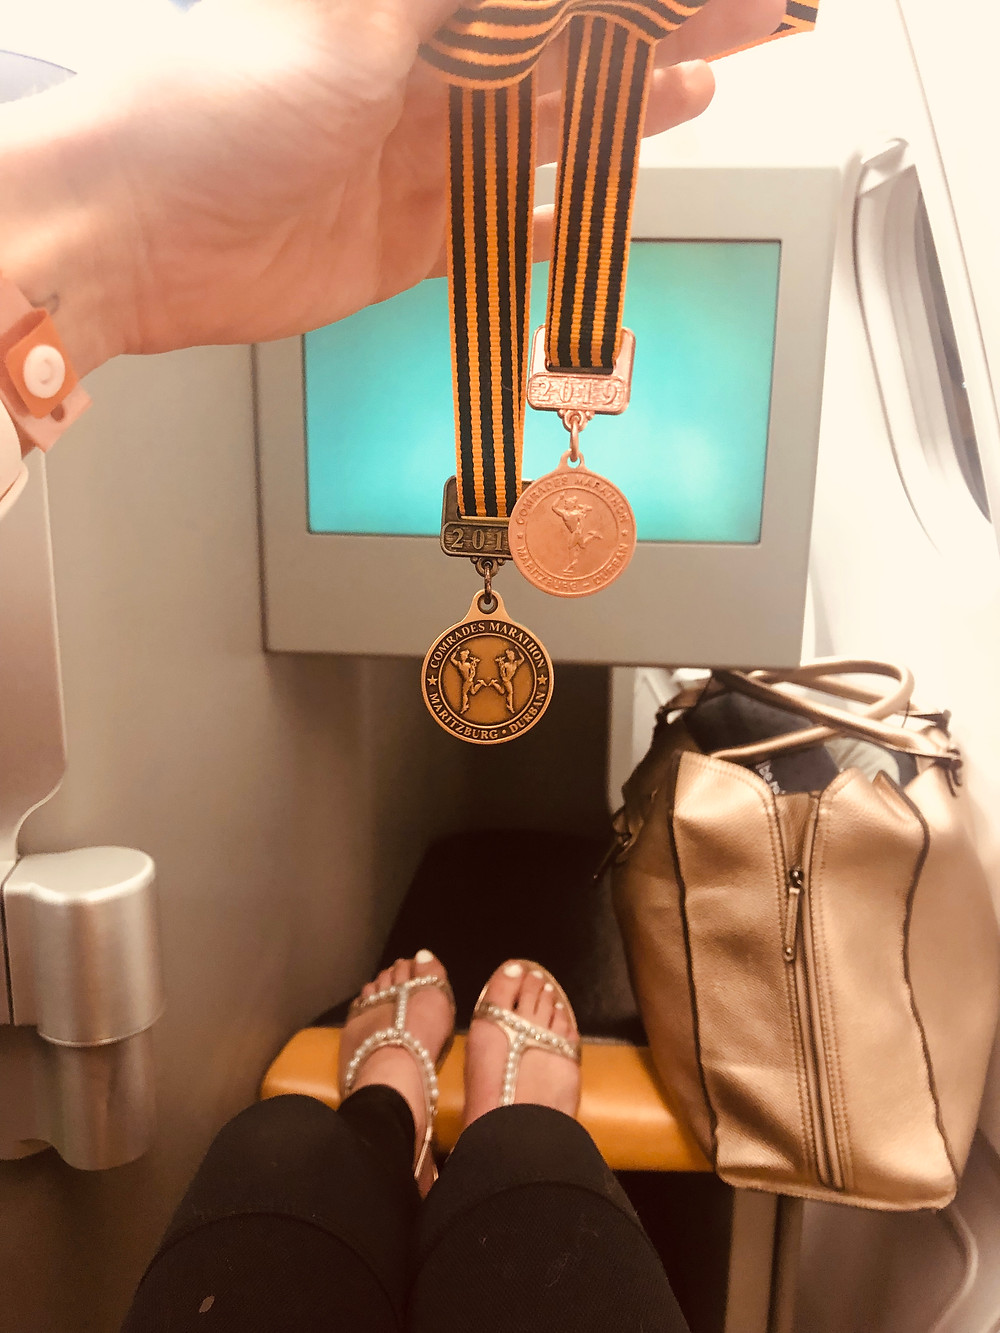 Comrades medals on the plane